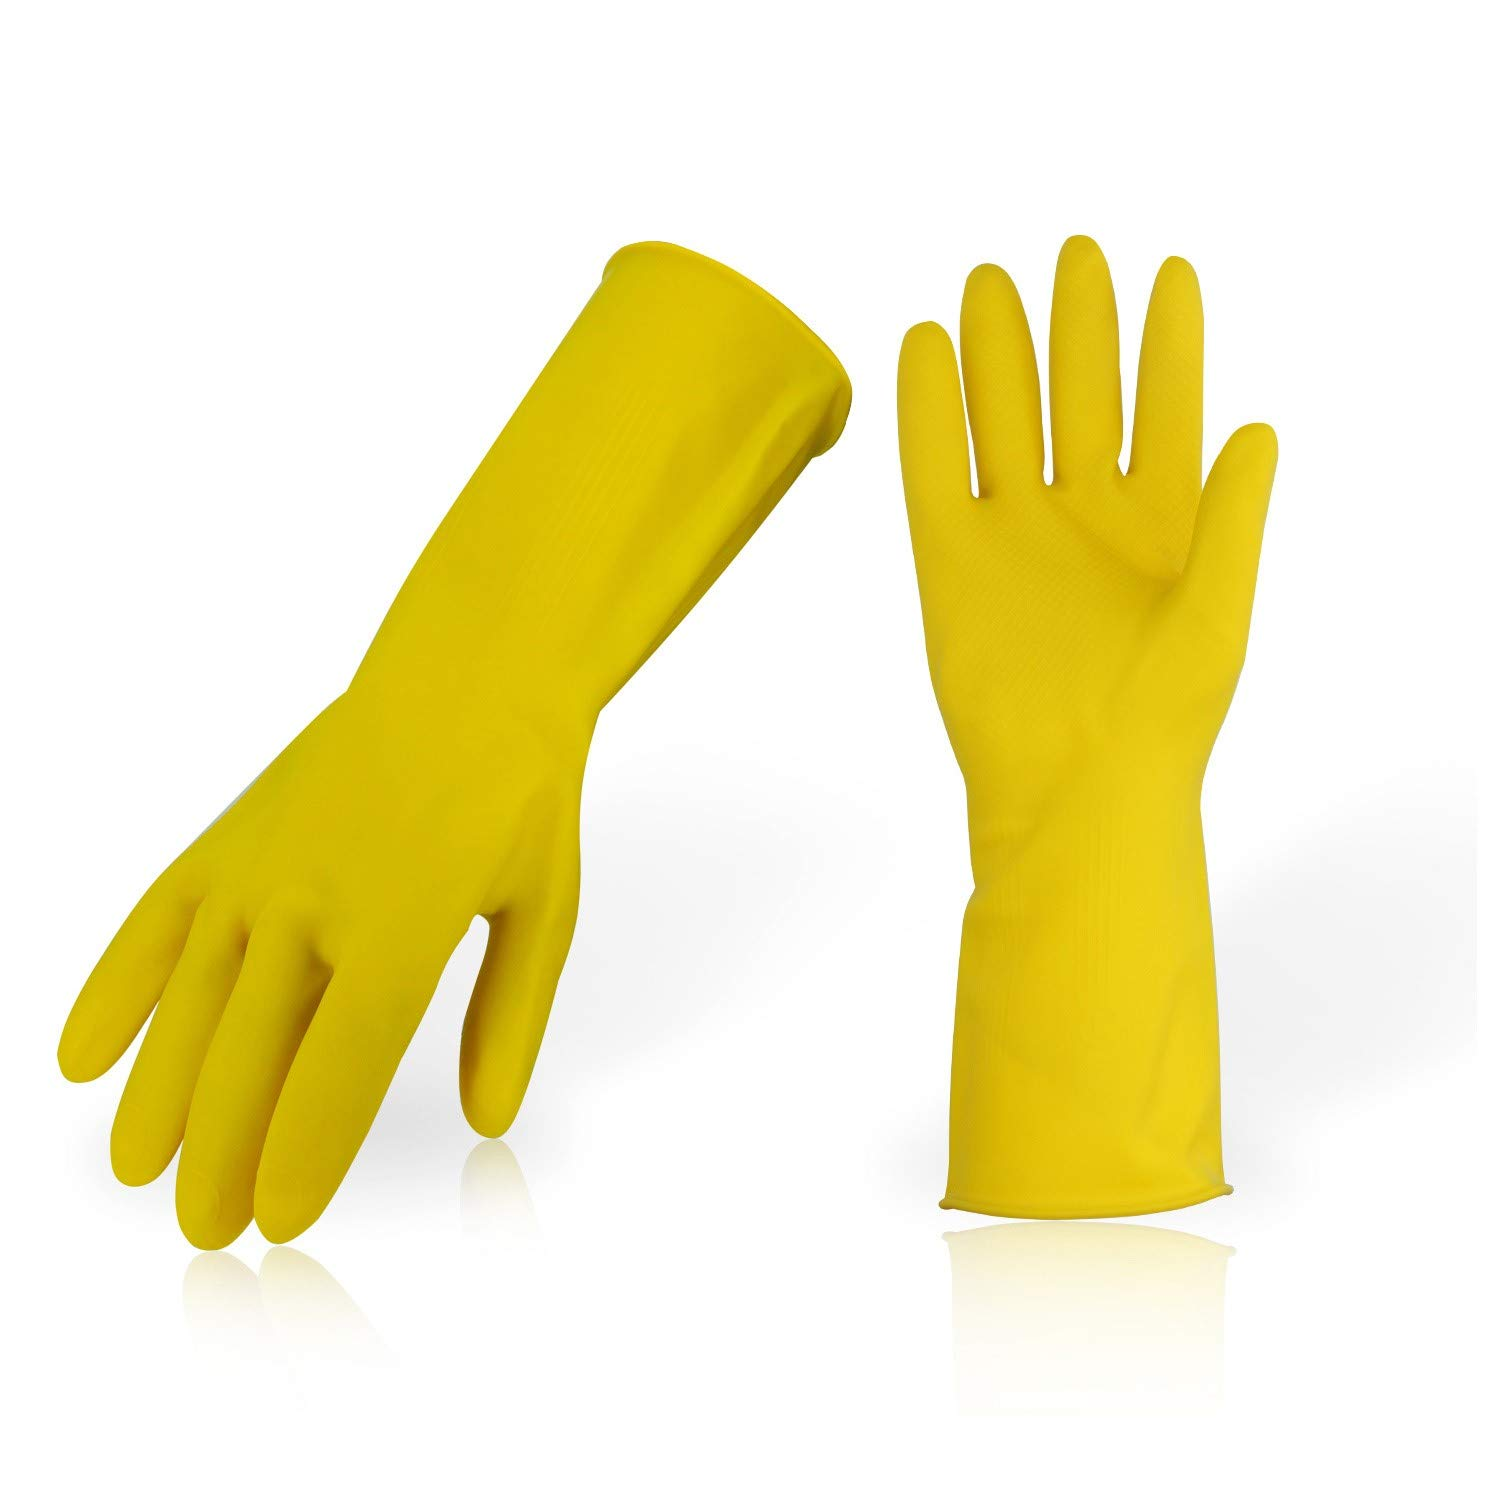 Vgo 10 Pairs Reusable Household Cleaning Dishwashing Kitchen Glove, Long Sleeve Thick Latex Working, Painting, Gardening Gloves,Pet Care(10 Pairs,Size L,Yellow,HH4601)